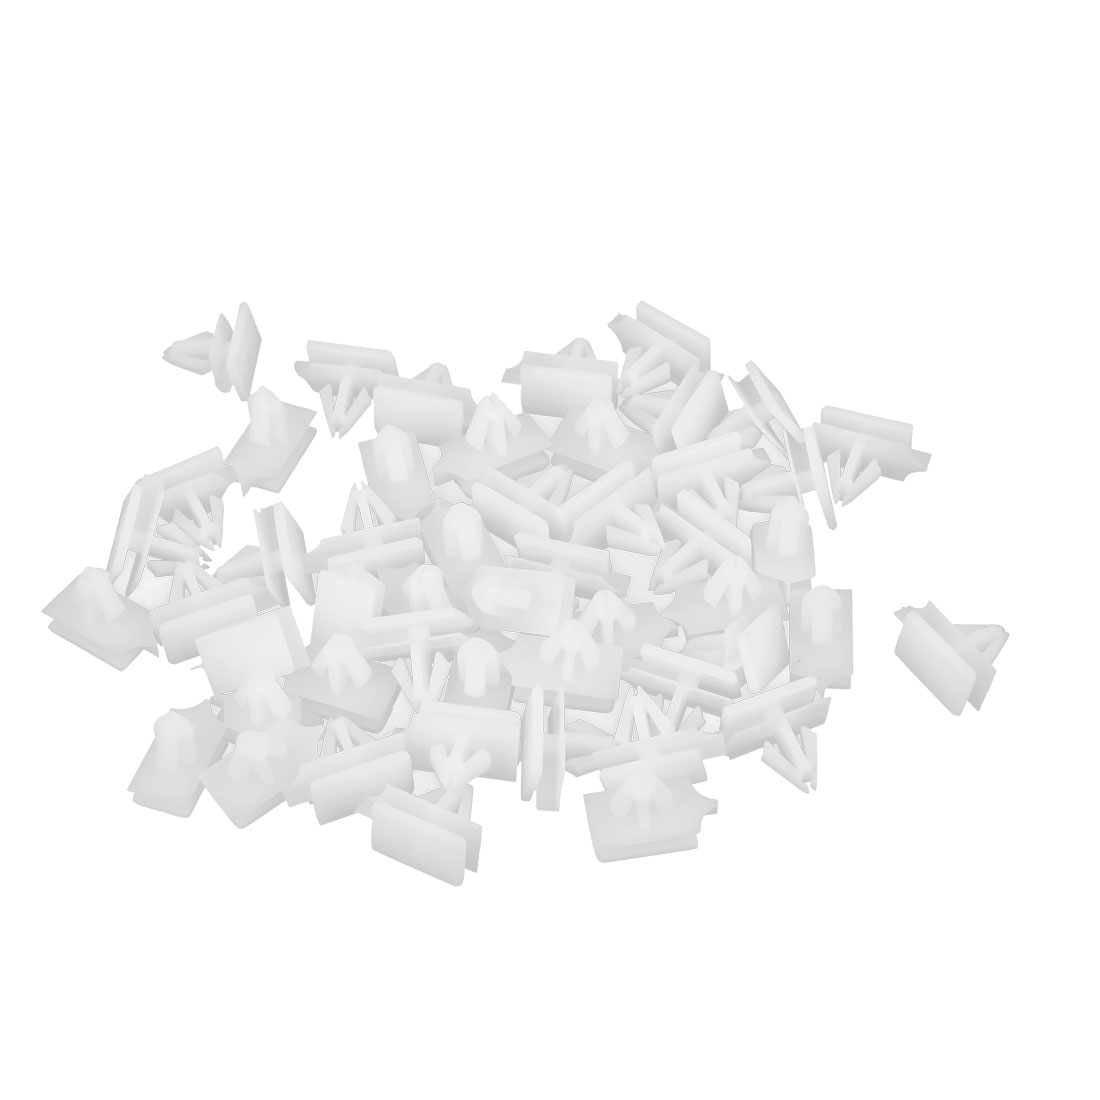 50 Pcs White Plastic Rivets Fastener Retainer 11 x 7mm Fit Hole for Car Fender